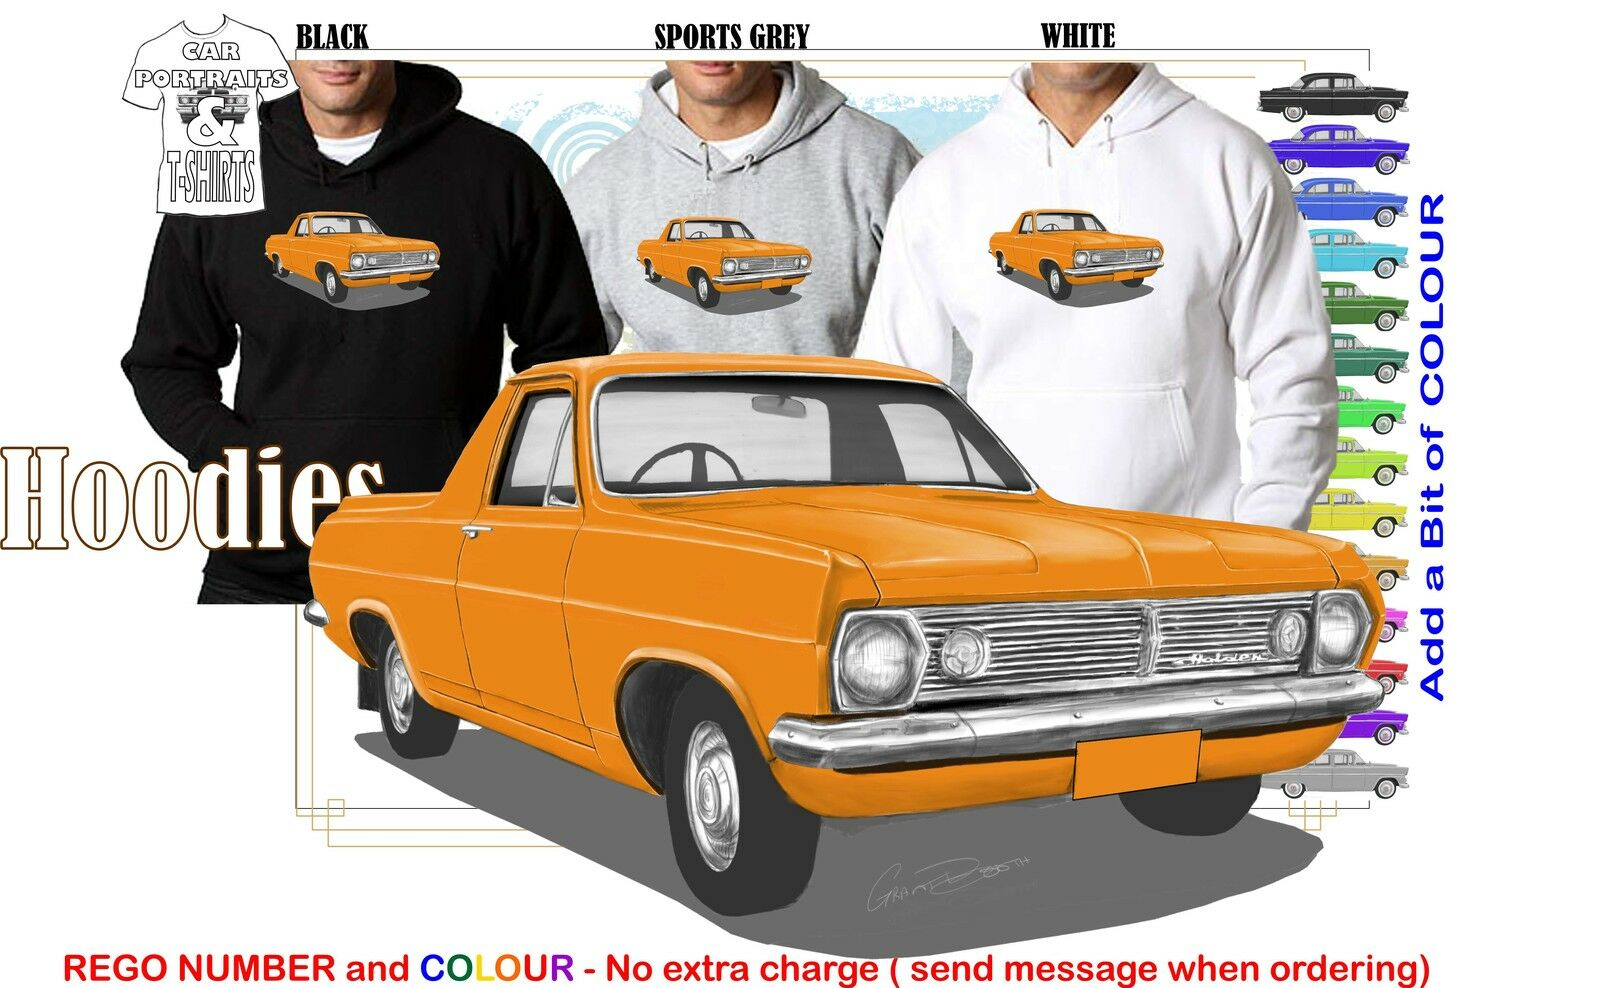 66-68 HR HOLDEN UTE HOODIE ILLUSTRATED CLASSIC RETRO MUSCLE SPORTS CAR